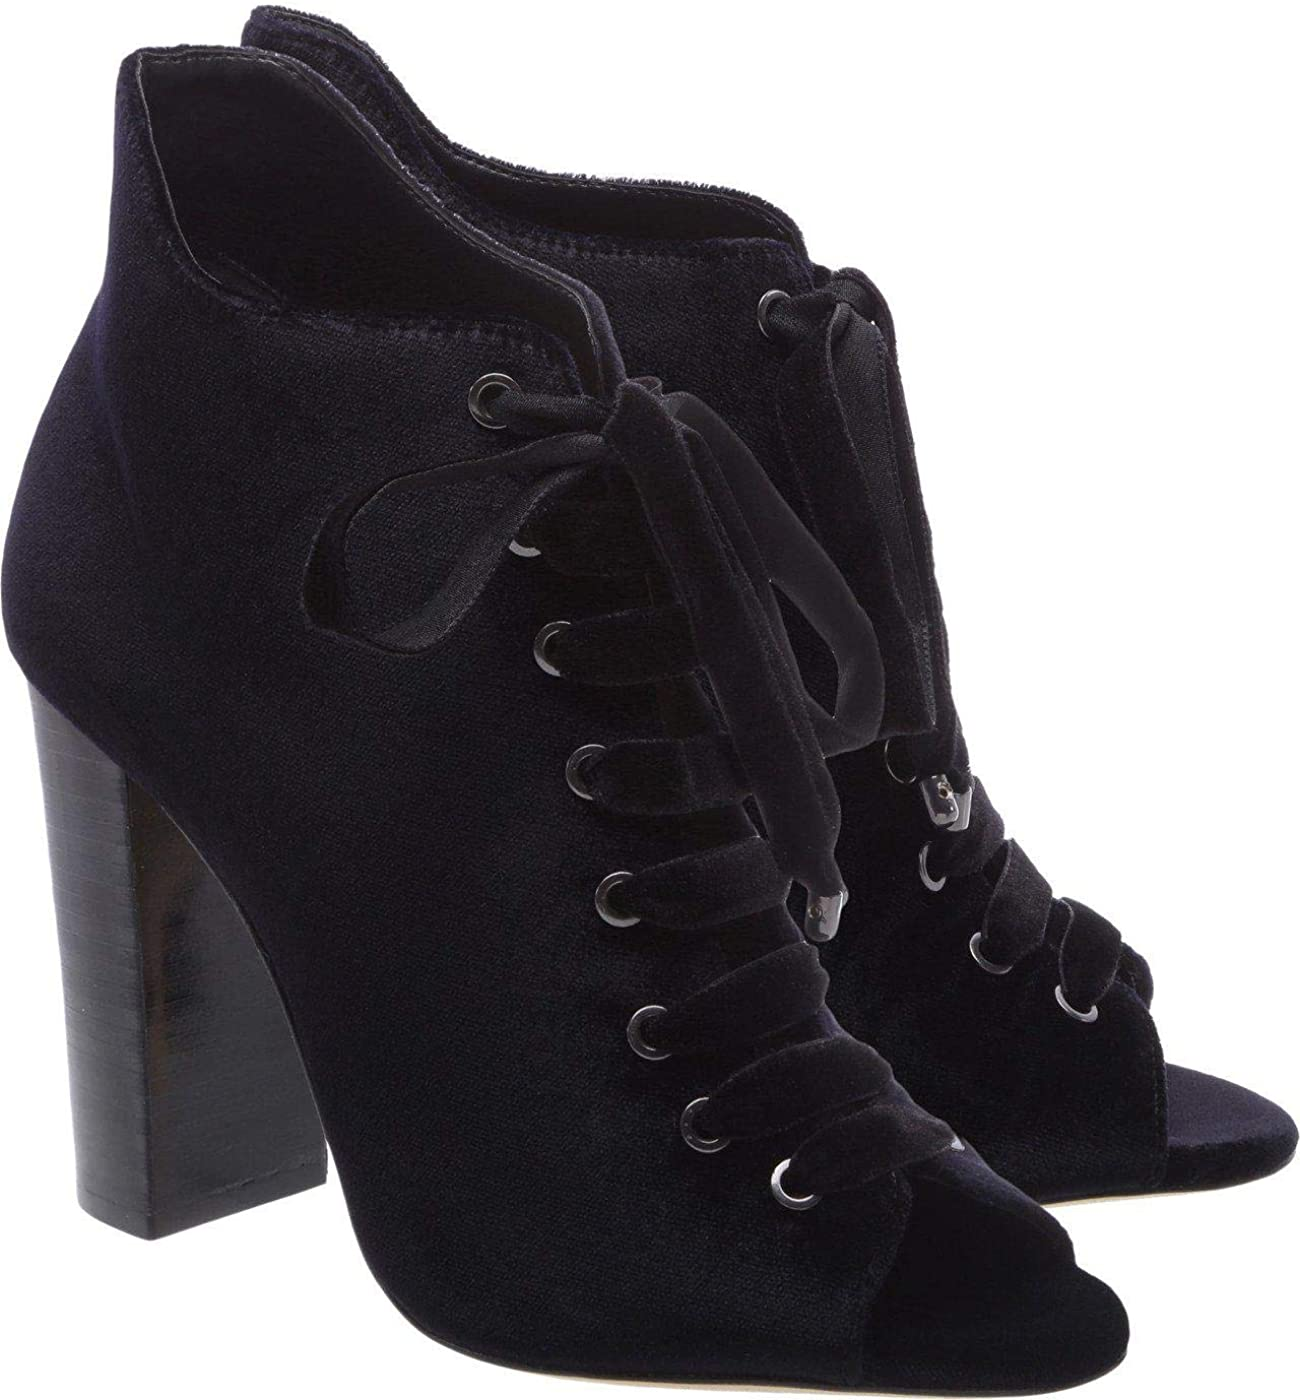 Schutz Alexia Black Leather Peep Toe LaceUp Edgy High Heel Stiletto Ankle Bootie